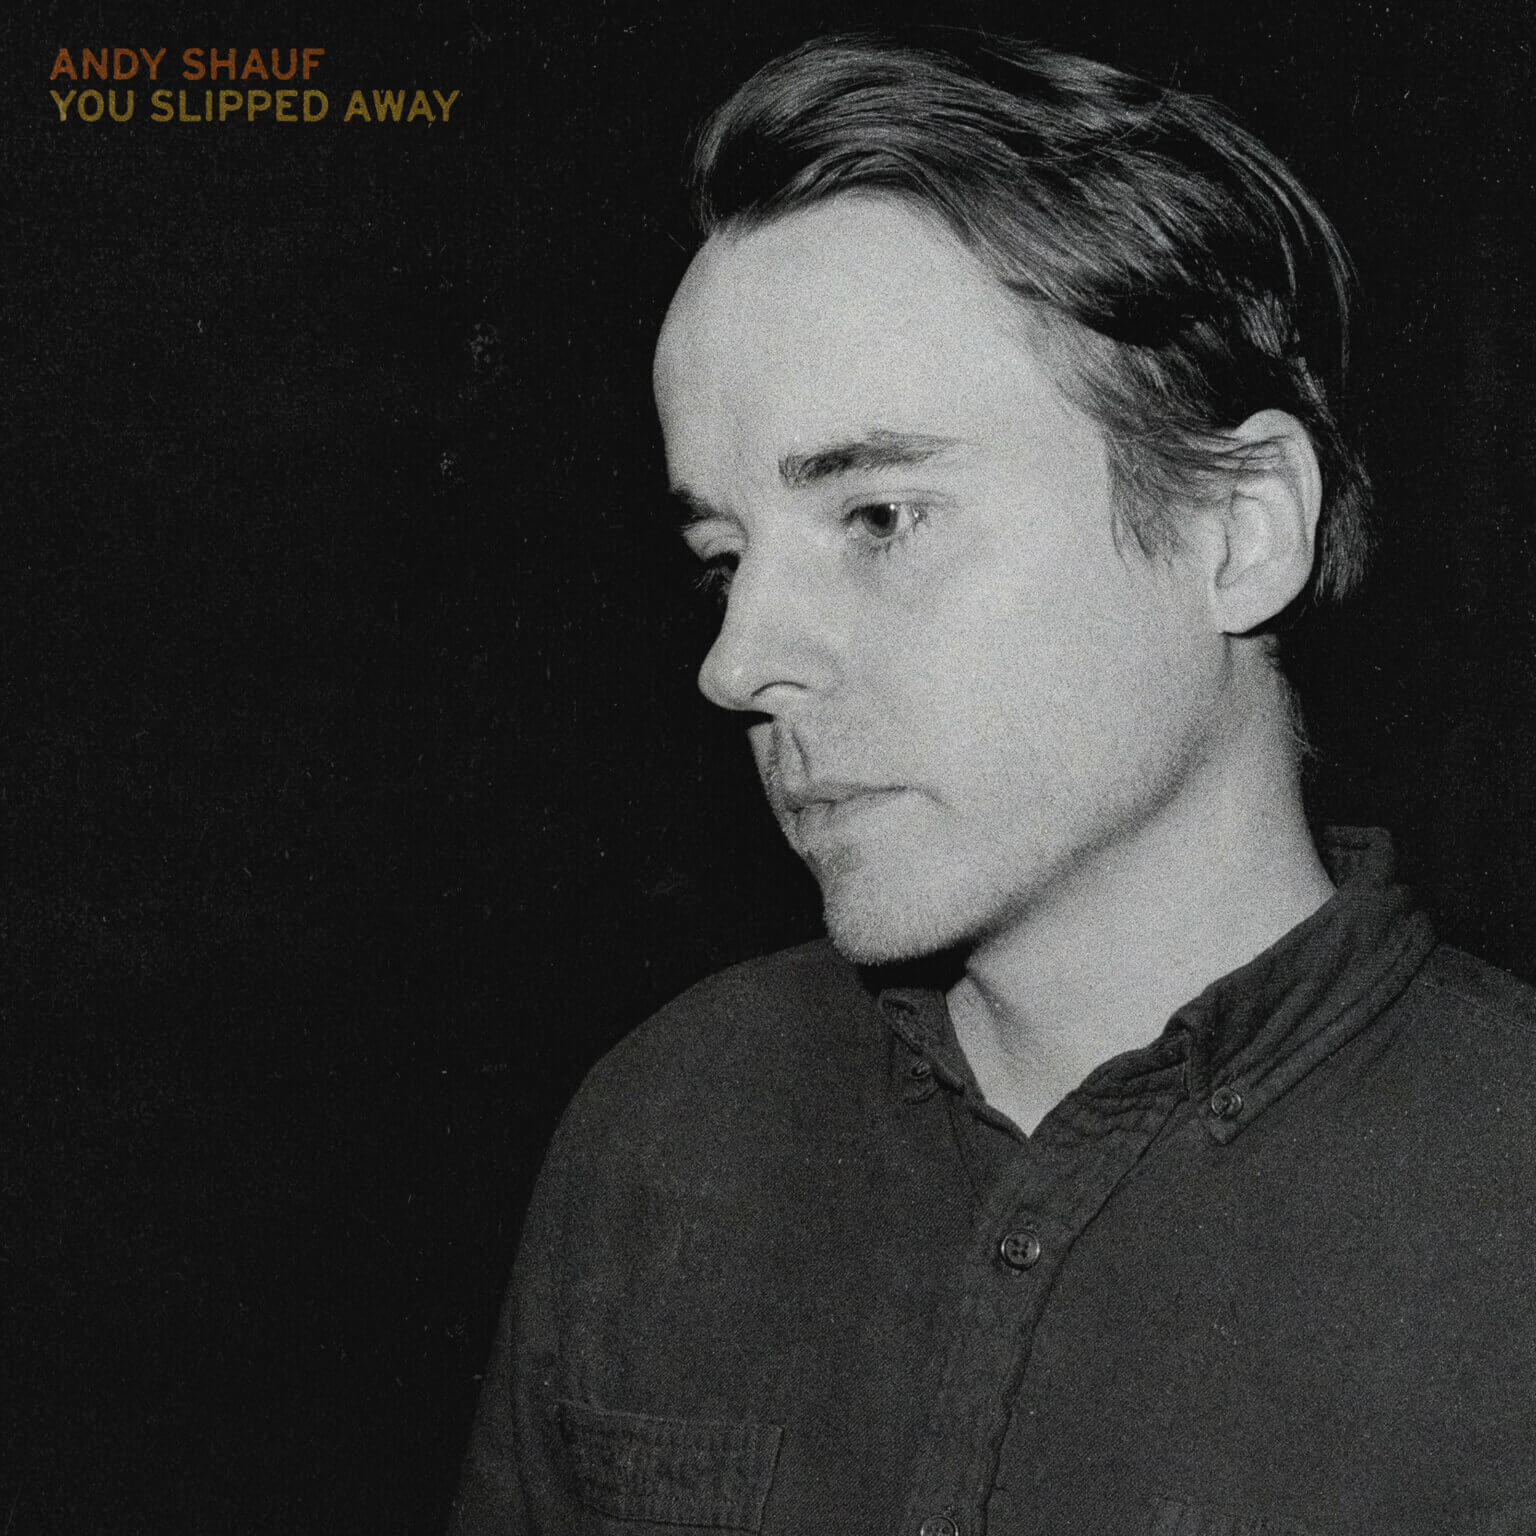 """Andy Shauf Drops New Single """"You Slipped Away."""" The track is off the singer/songwriter's current release The Neon Skyline"""